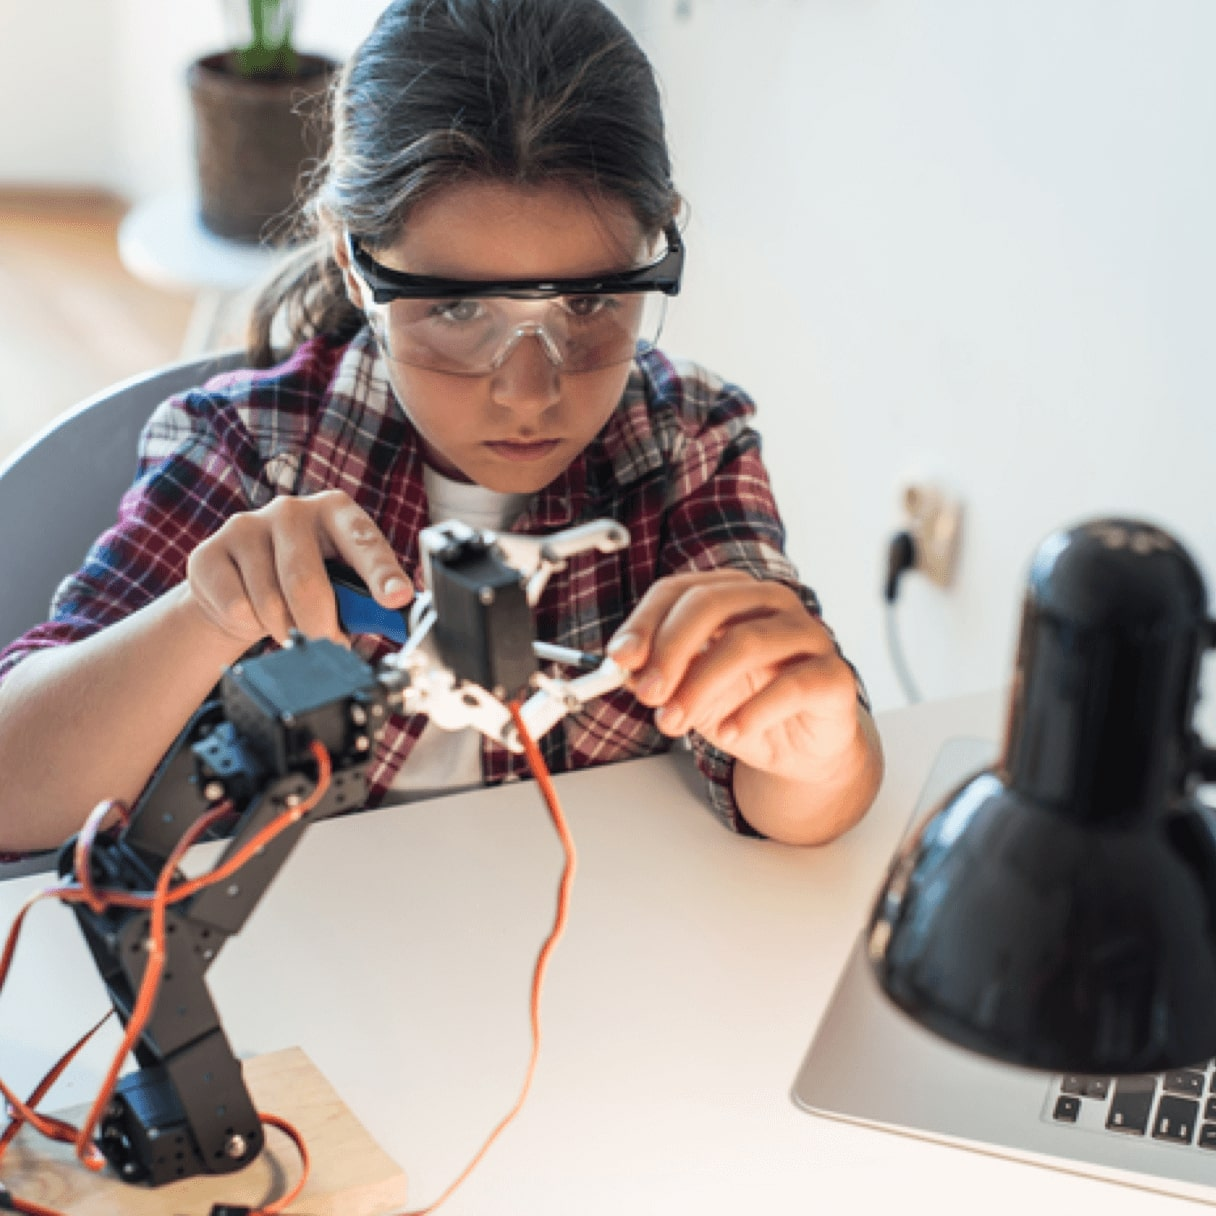 A student builds a robot while video chatting with a teacher and receiving personalized instructions.